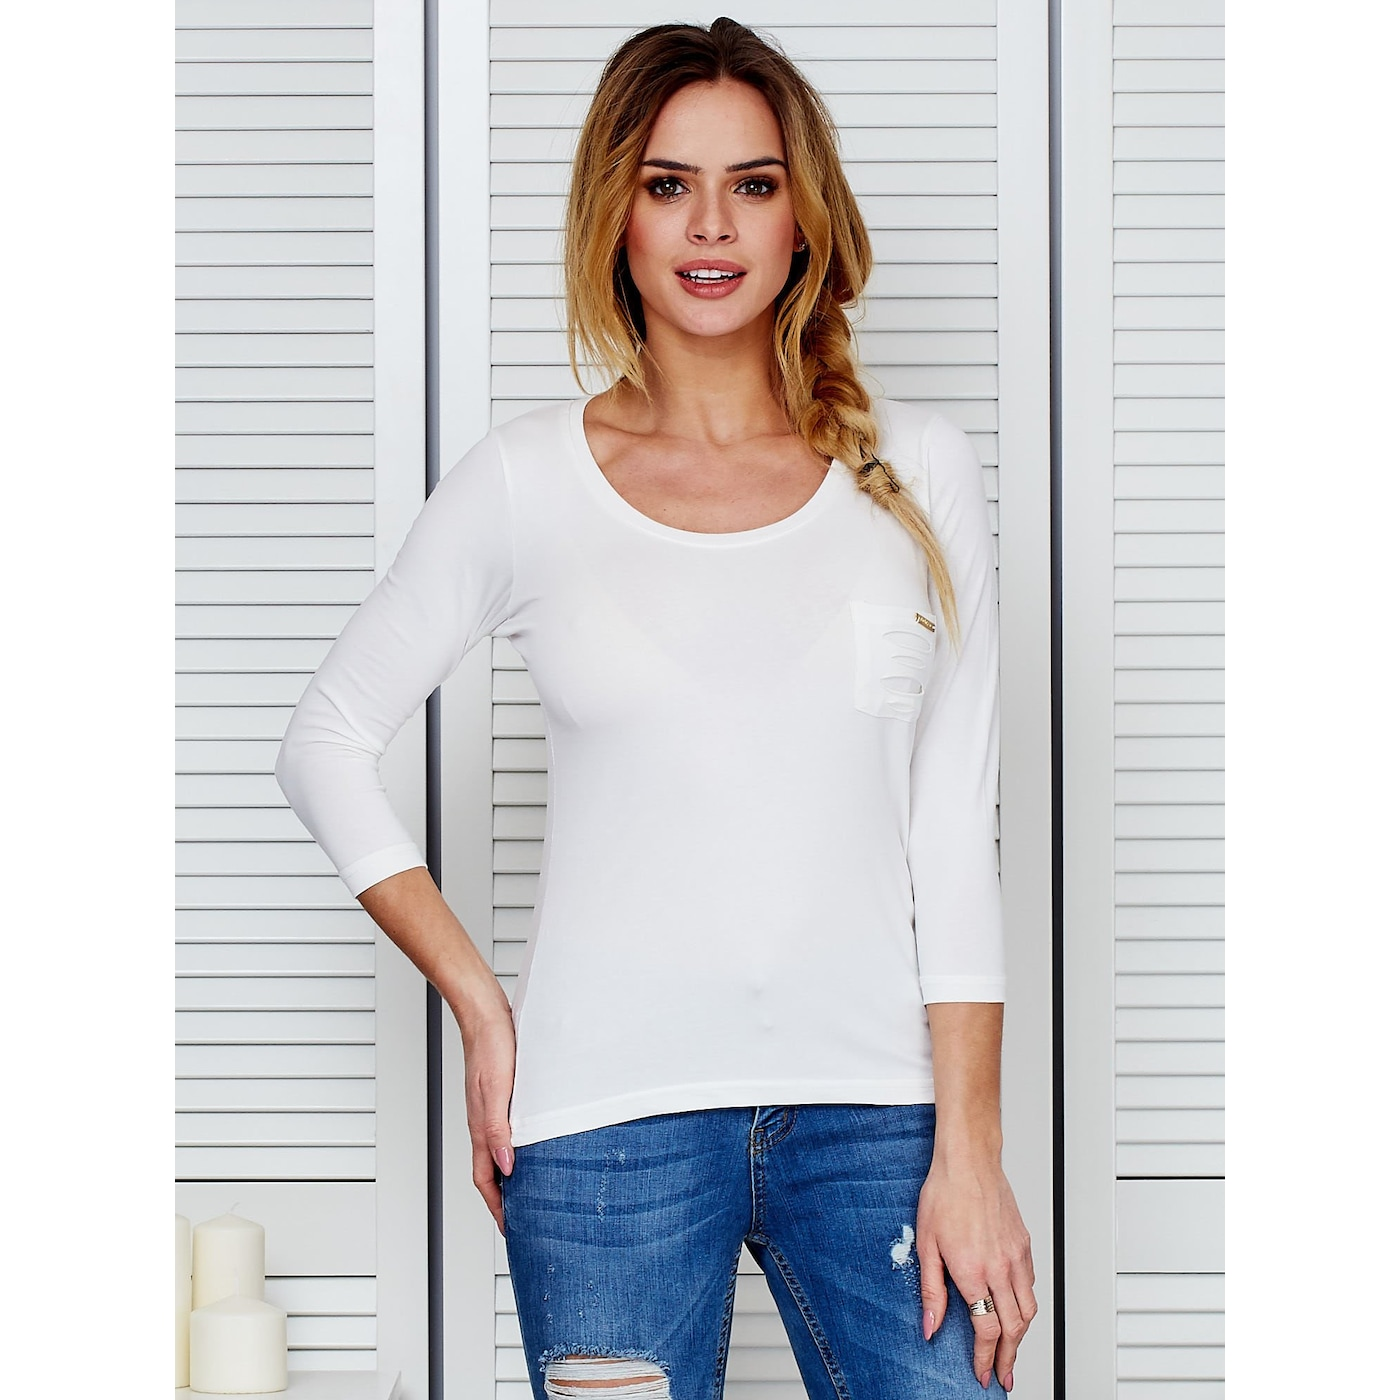 Ecru blouse with cutouts on the back